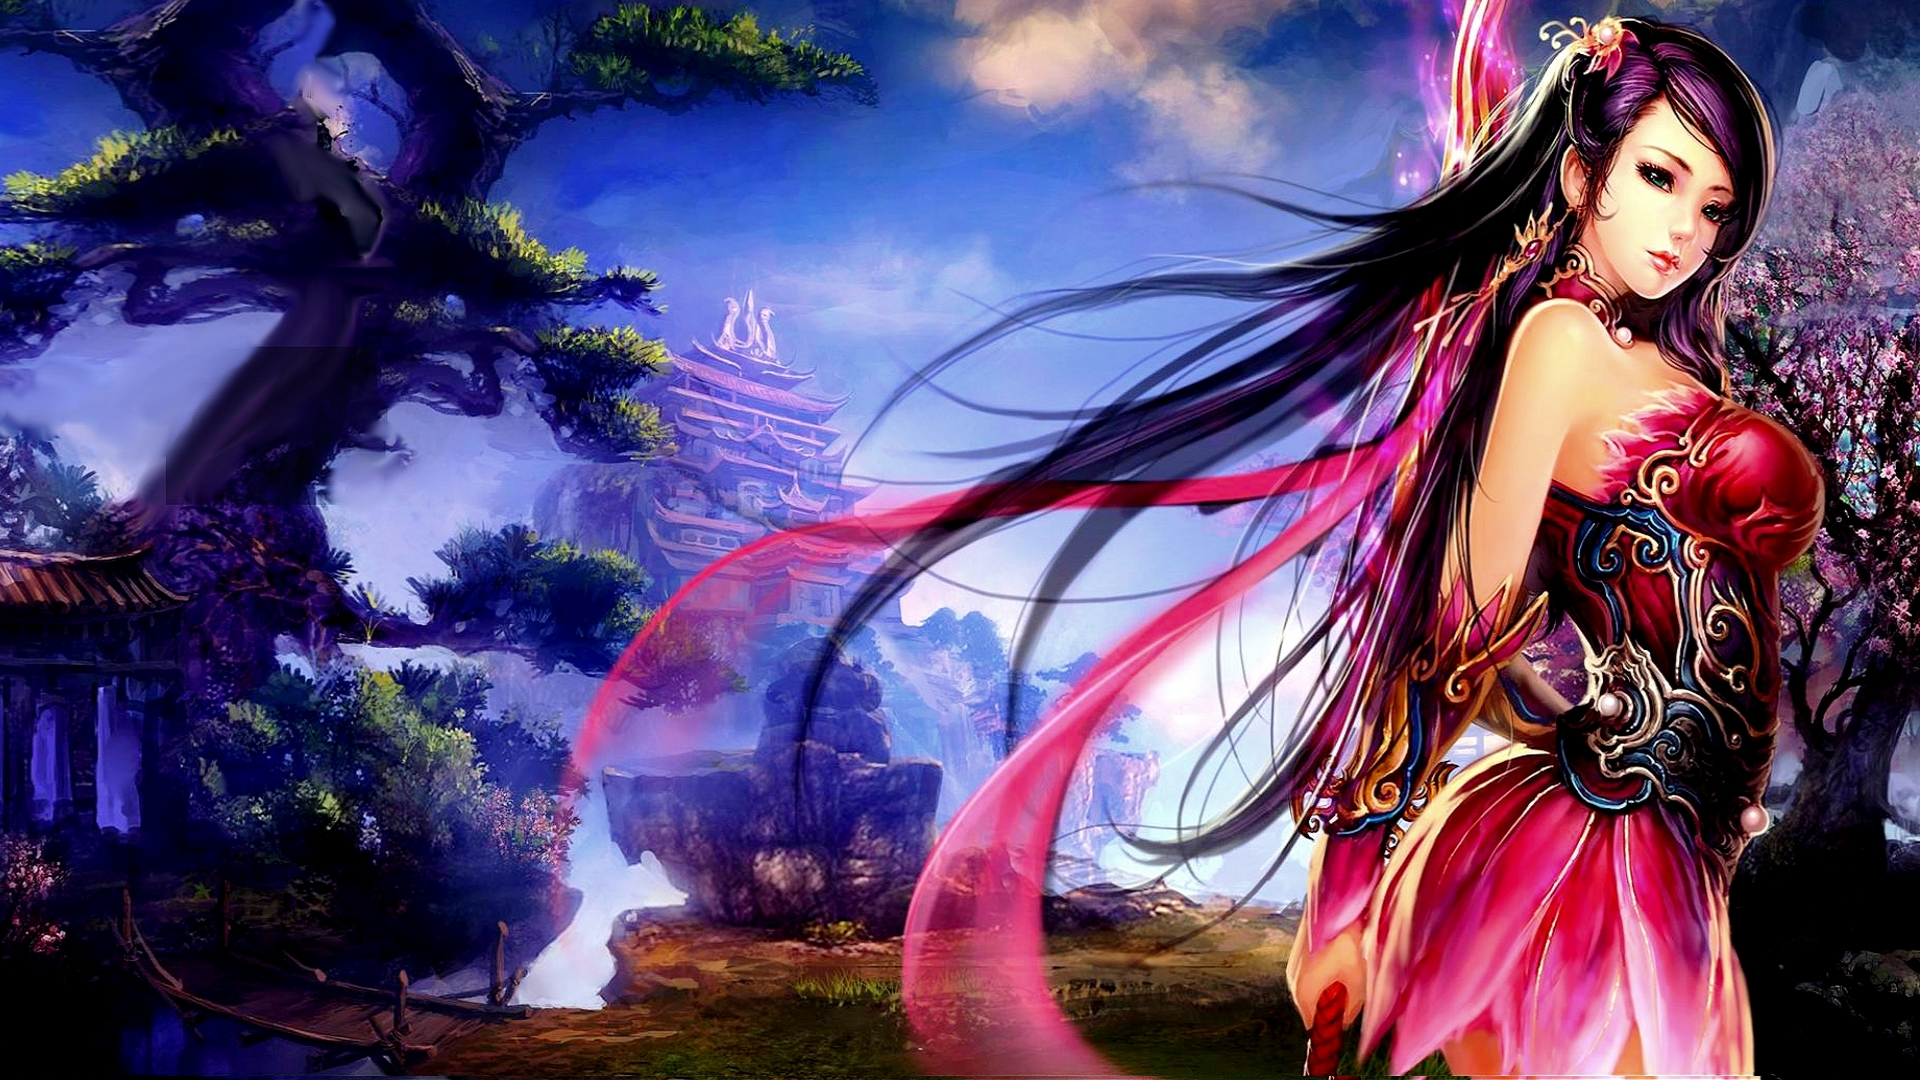 Free Download Wallpaper Fantasy Girl 1920x1080 1920x1080 For